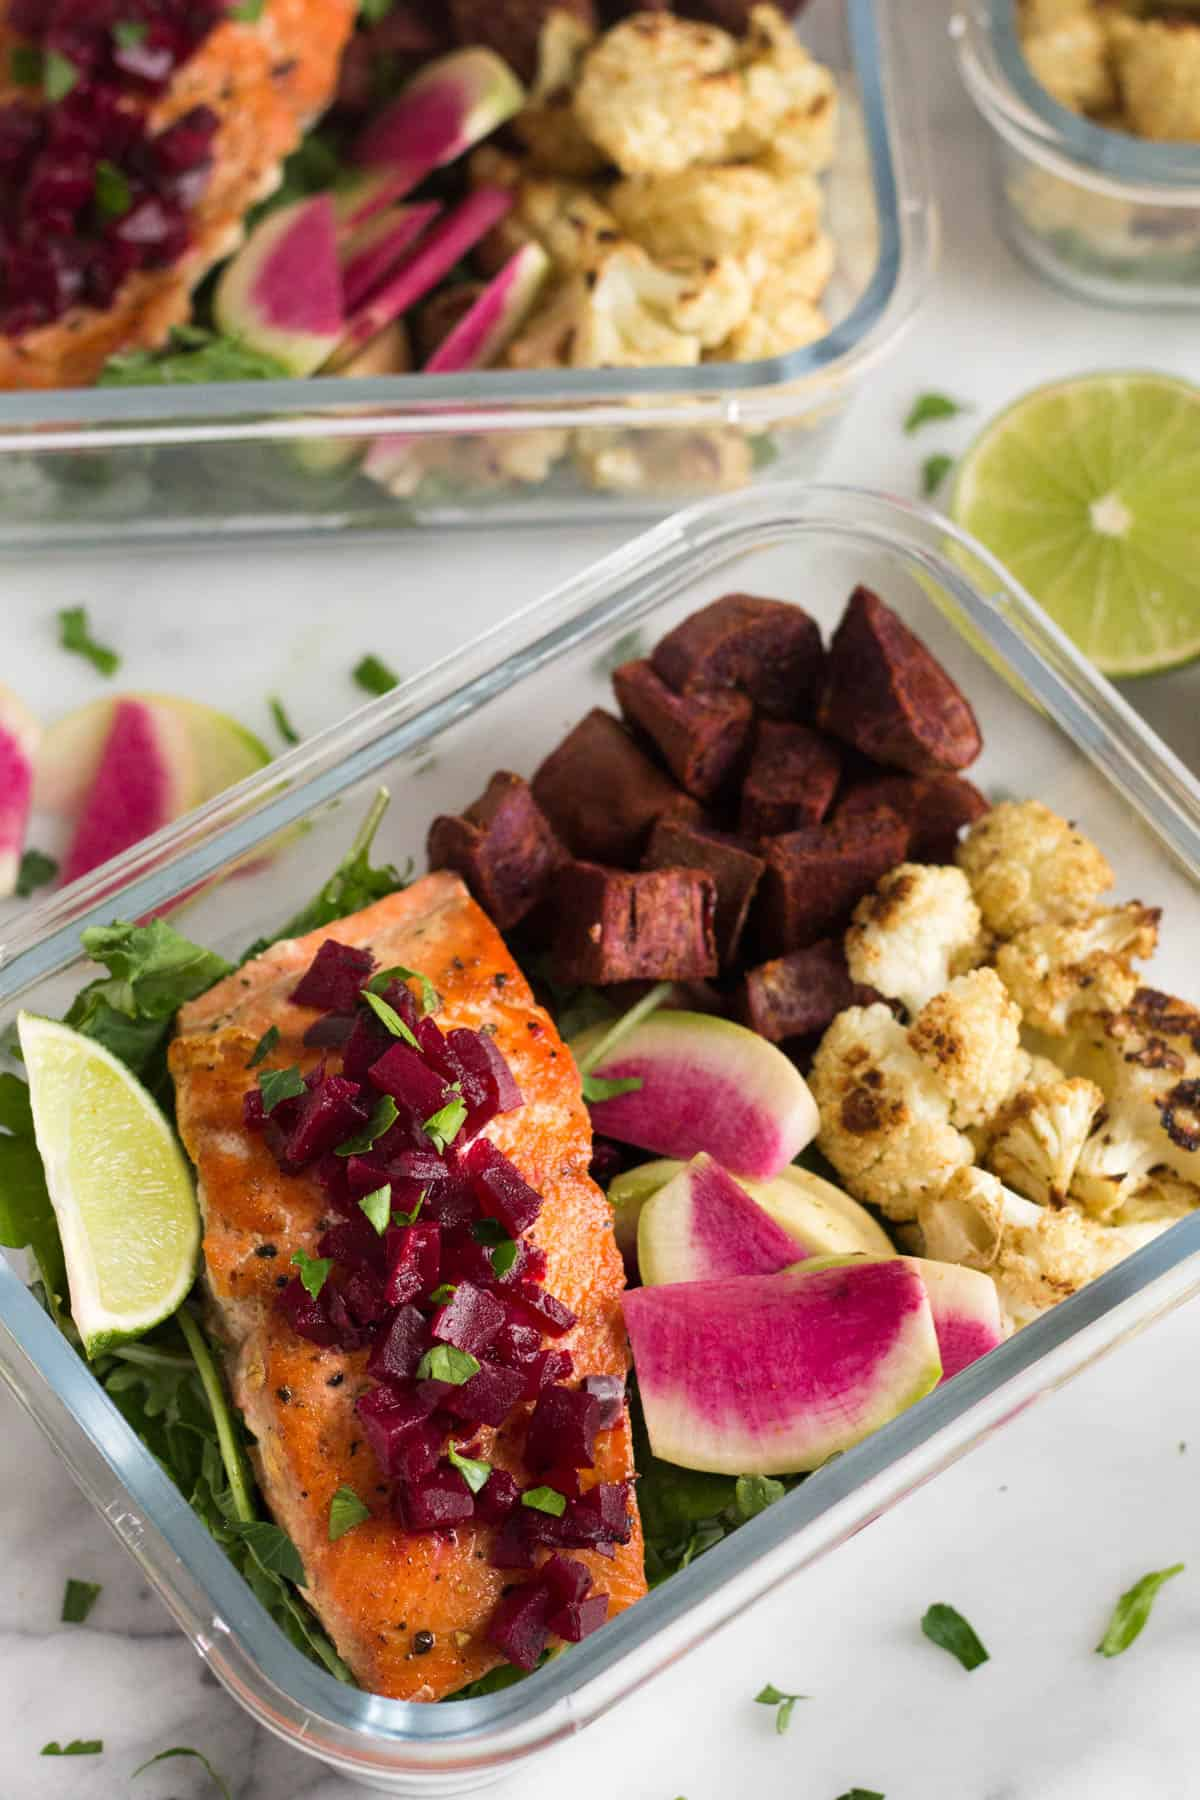 Two meal prep containers of greens, roasted veggies, and pan friend salmon topped with beets and a lime wedge.